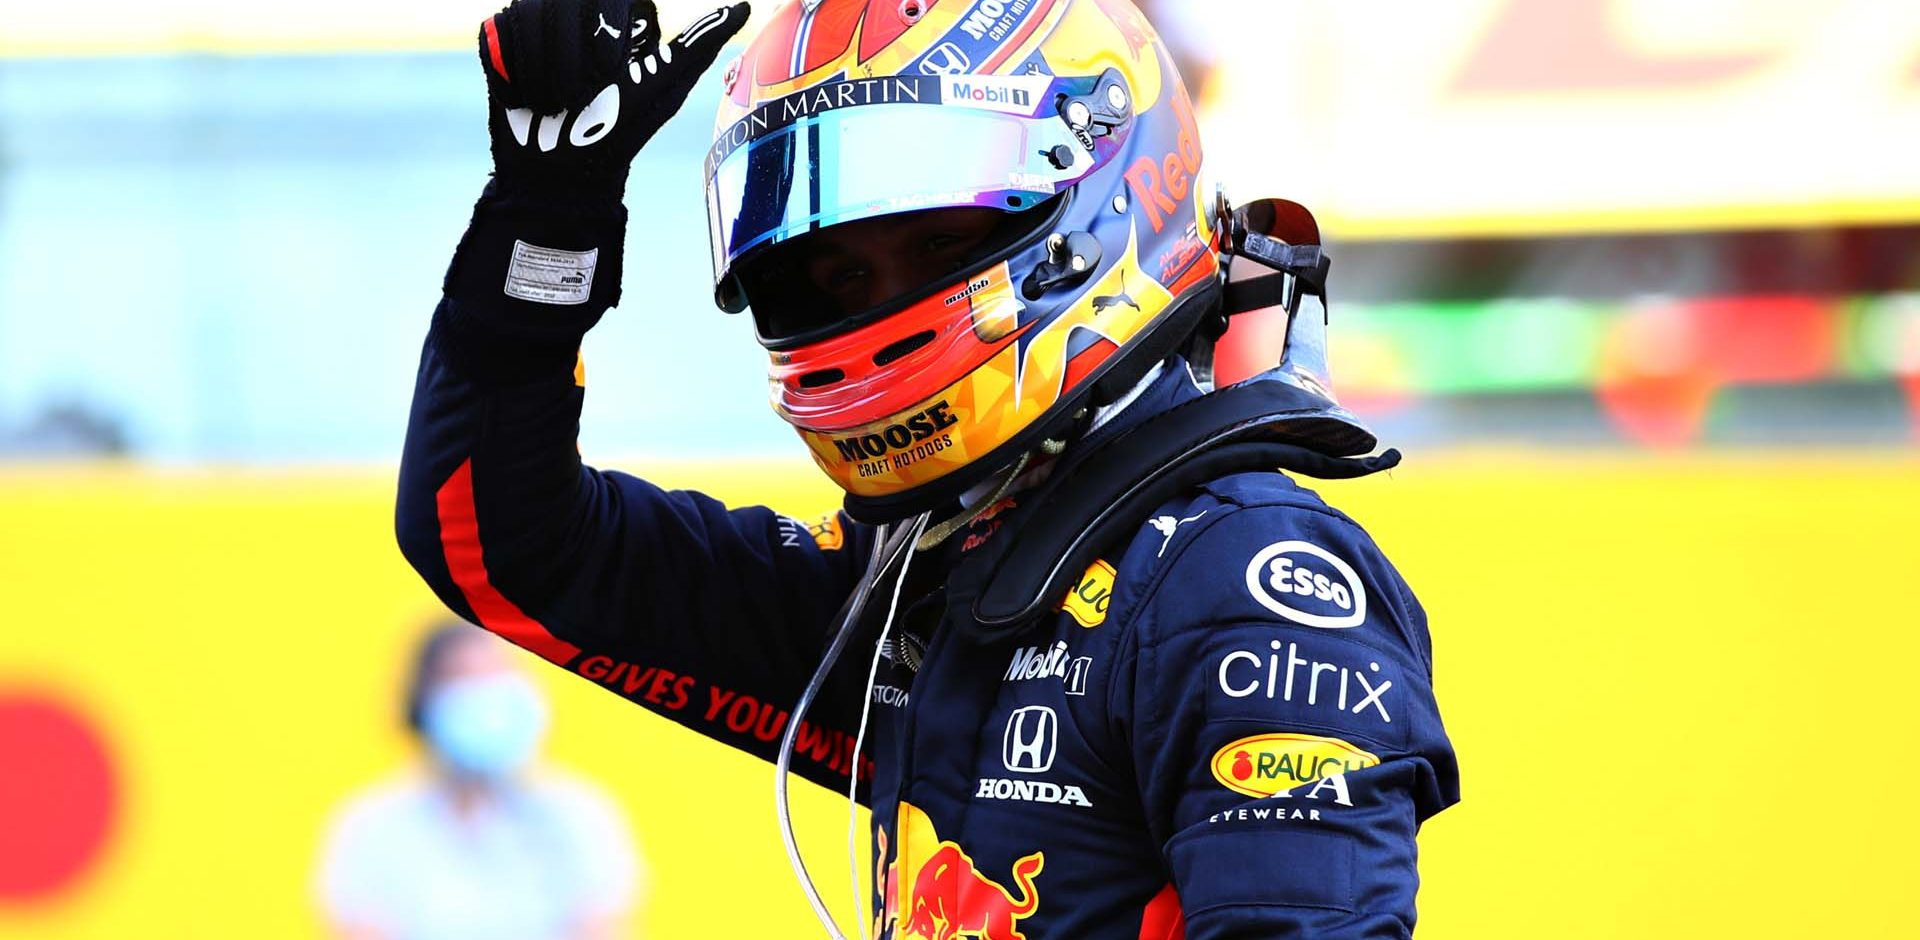 SCARPERIA, ITALY - SEPTEMBER 13: Third placed Alexander Albon of Thailand and Red Bull Racing celebrates in parc ferme during the F1 Grand Prix of Tuscany at Mugello Circuit on September 13, 2020 in Scarperia, Italy. (Photo by Mark Thompson/Getty Images)